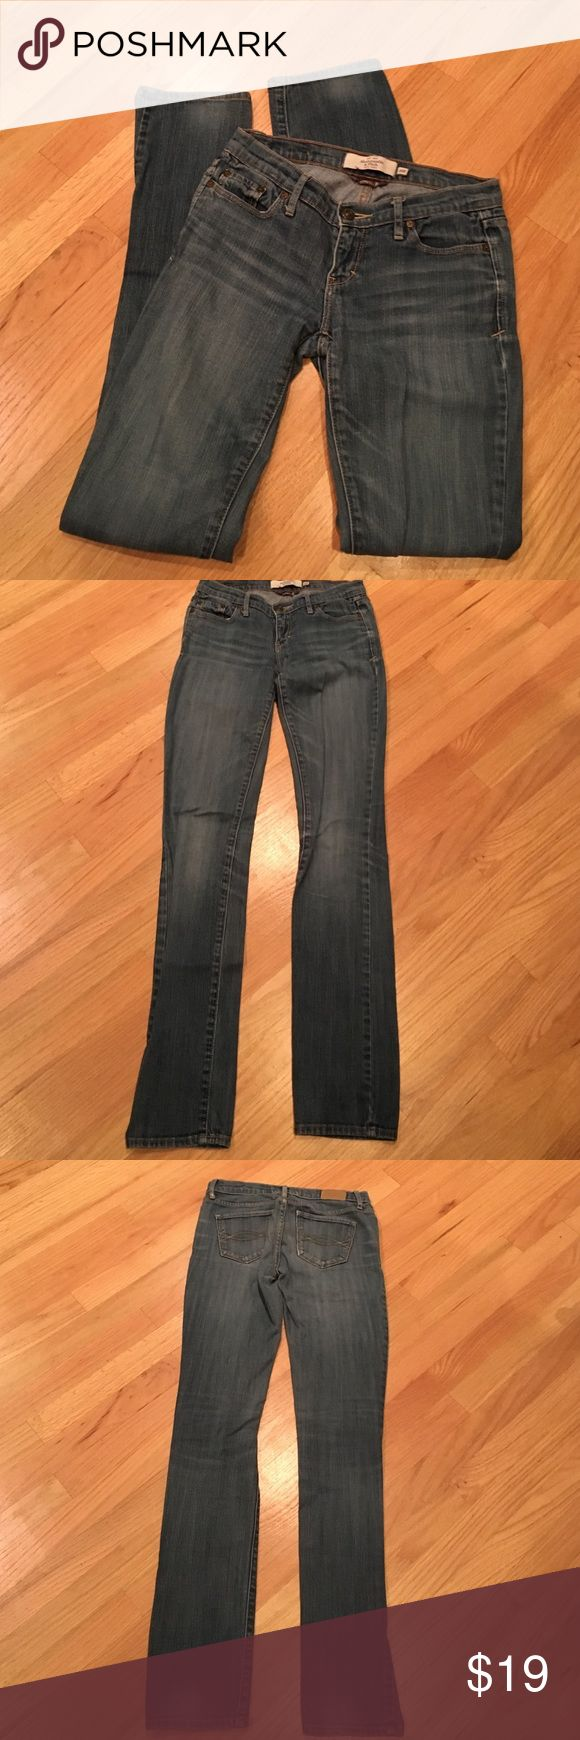 """💥Abercrombie Stretch Jeans A & F Stretch, """"Erin"""" Jeans, size 00R, soft, good condition, no holes Abercrombie & Fitch Jeans"""